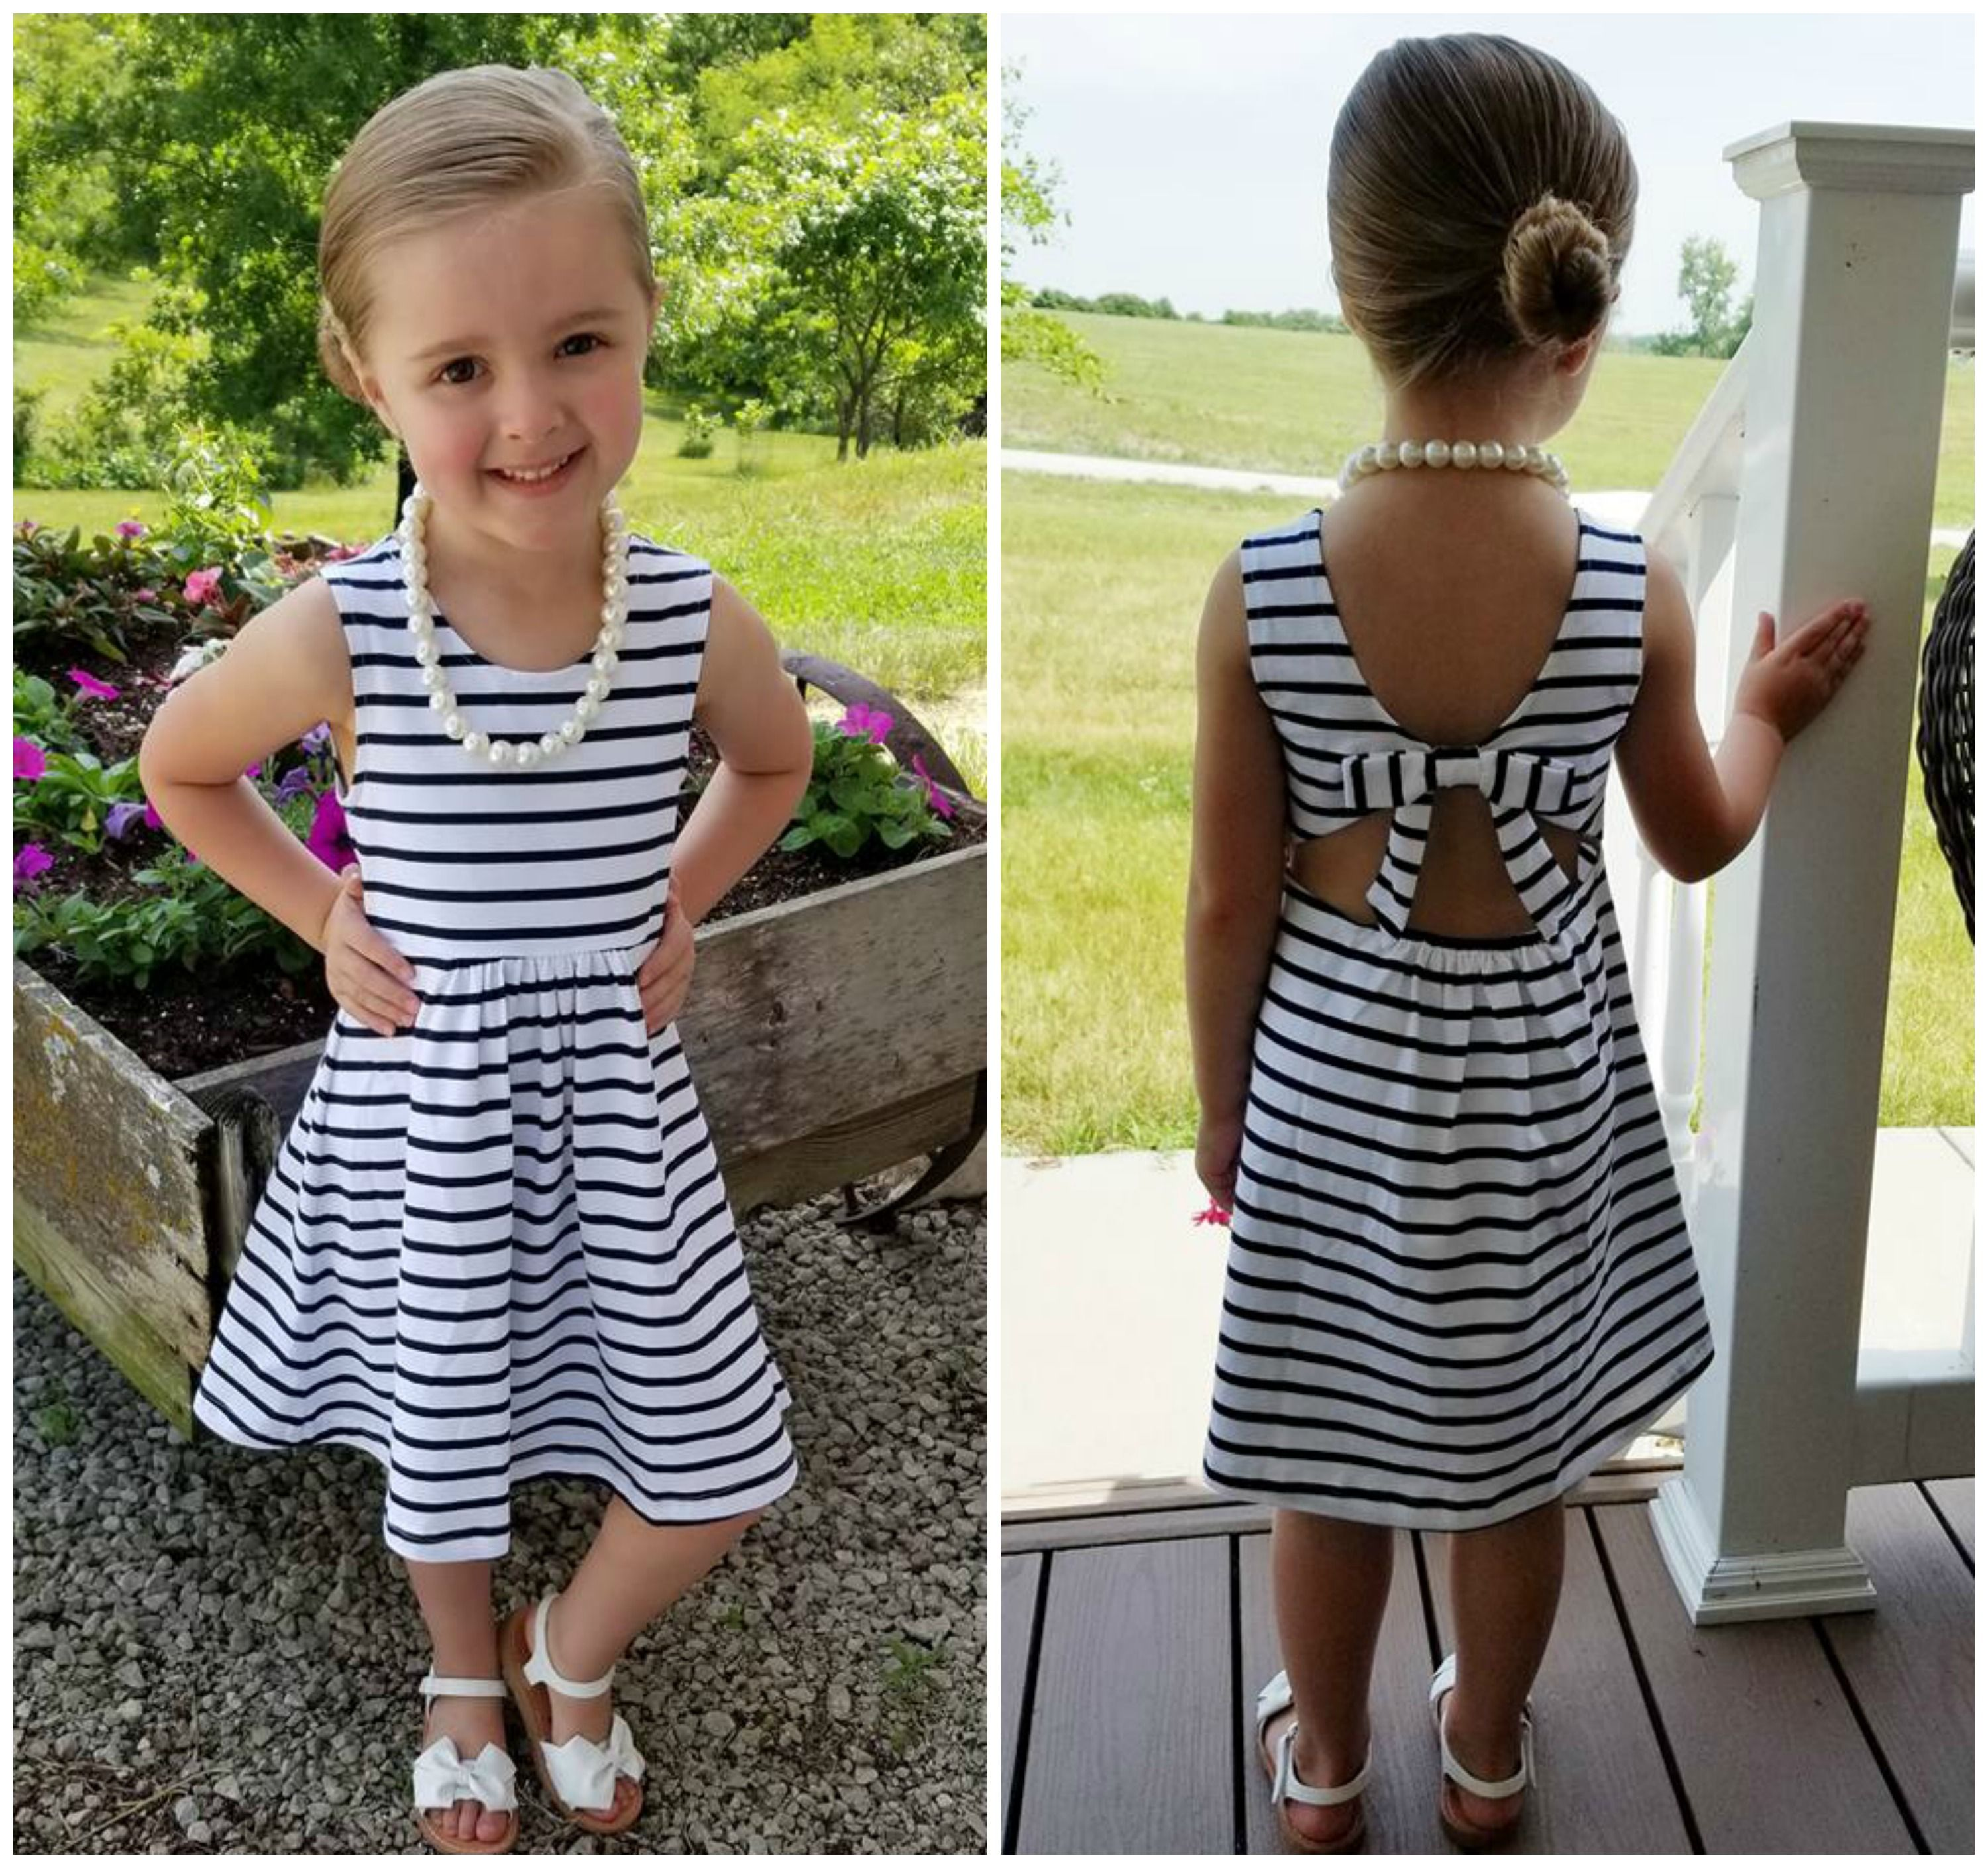 e14bf8cee Children's boutique clothing and accessories Knit ruffle items, icings,  cotton clothing, toddlers fashion